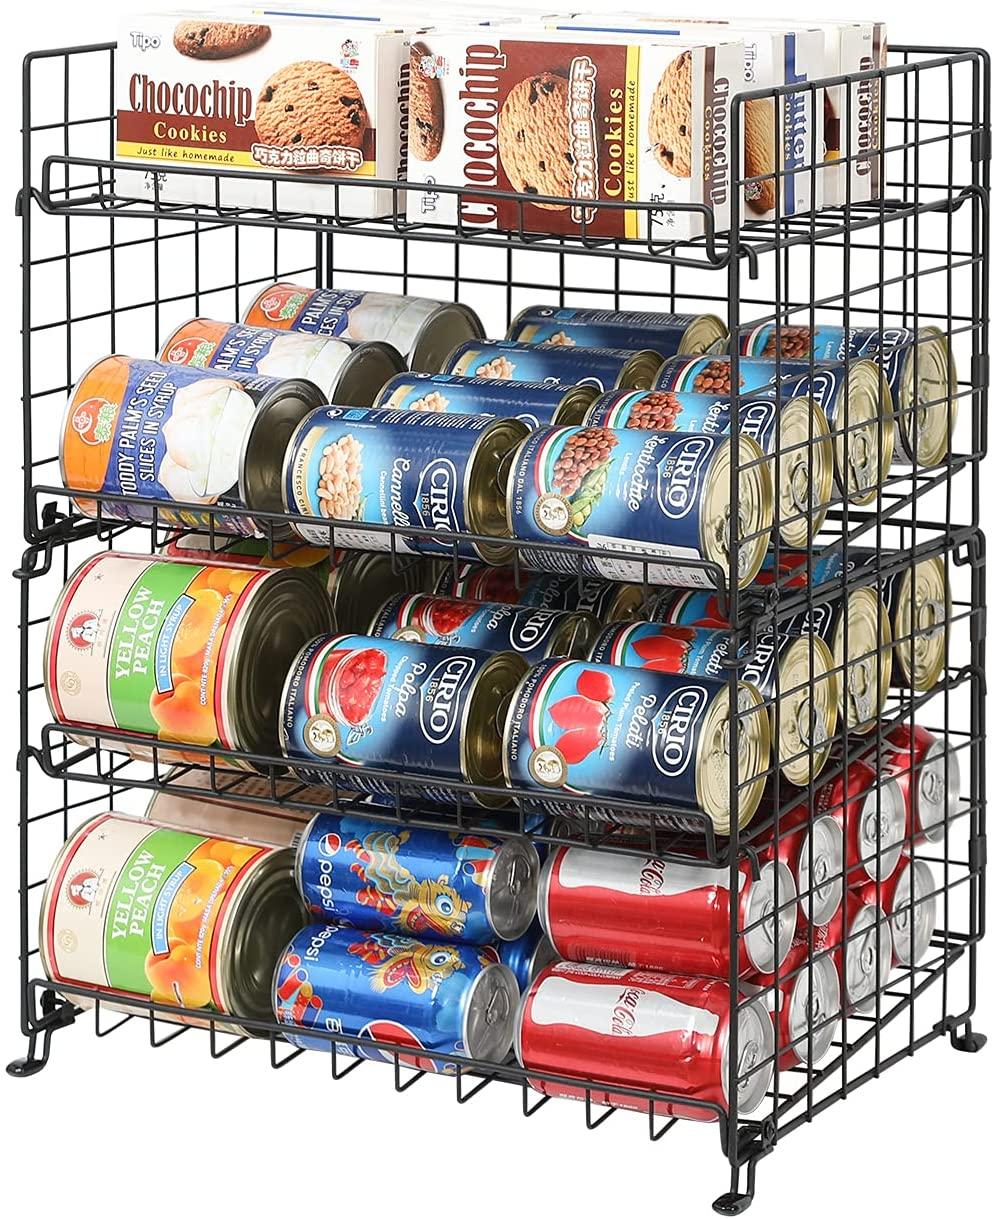 Stackable Can Rack Organizer, 4-Tier Can Storage Rack for Kitchen Cabinet Pantry, Multifunctional Can Dispenser for Storing Canned Snacks Drinks and More,Black